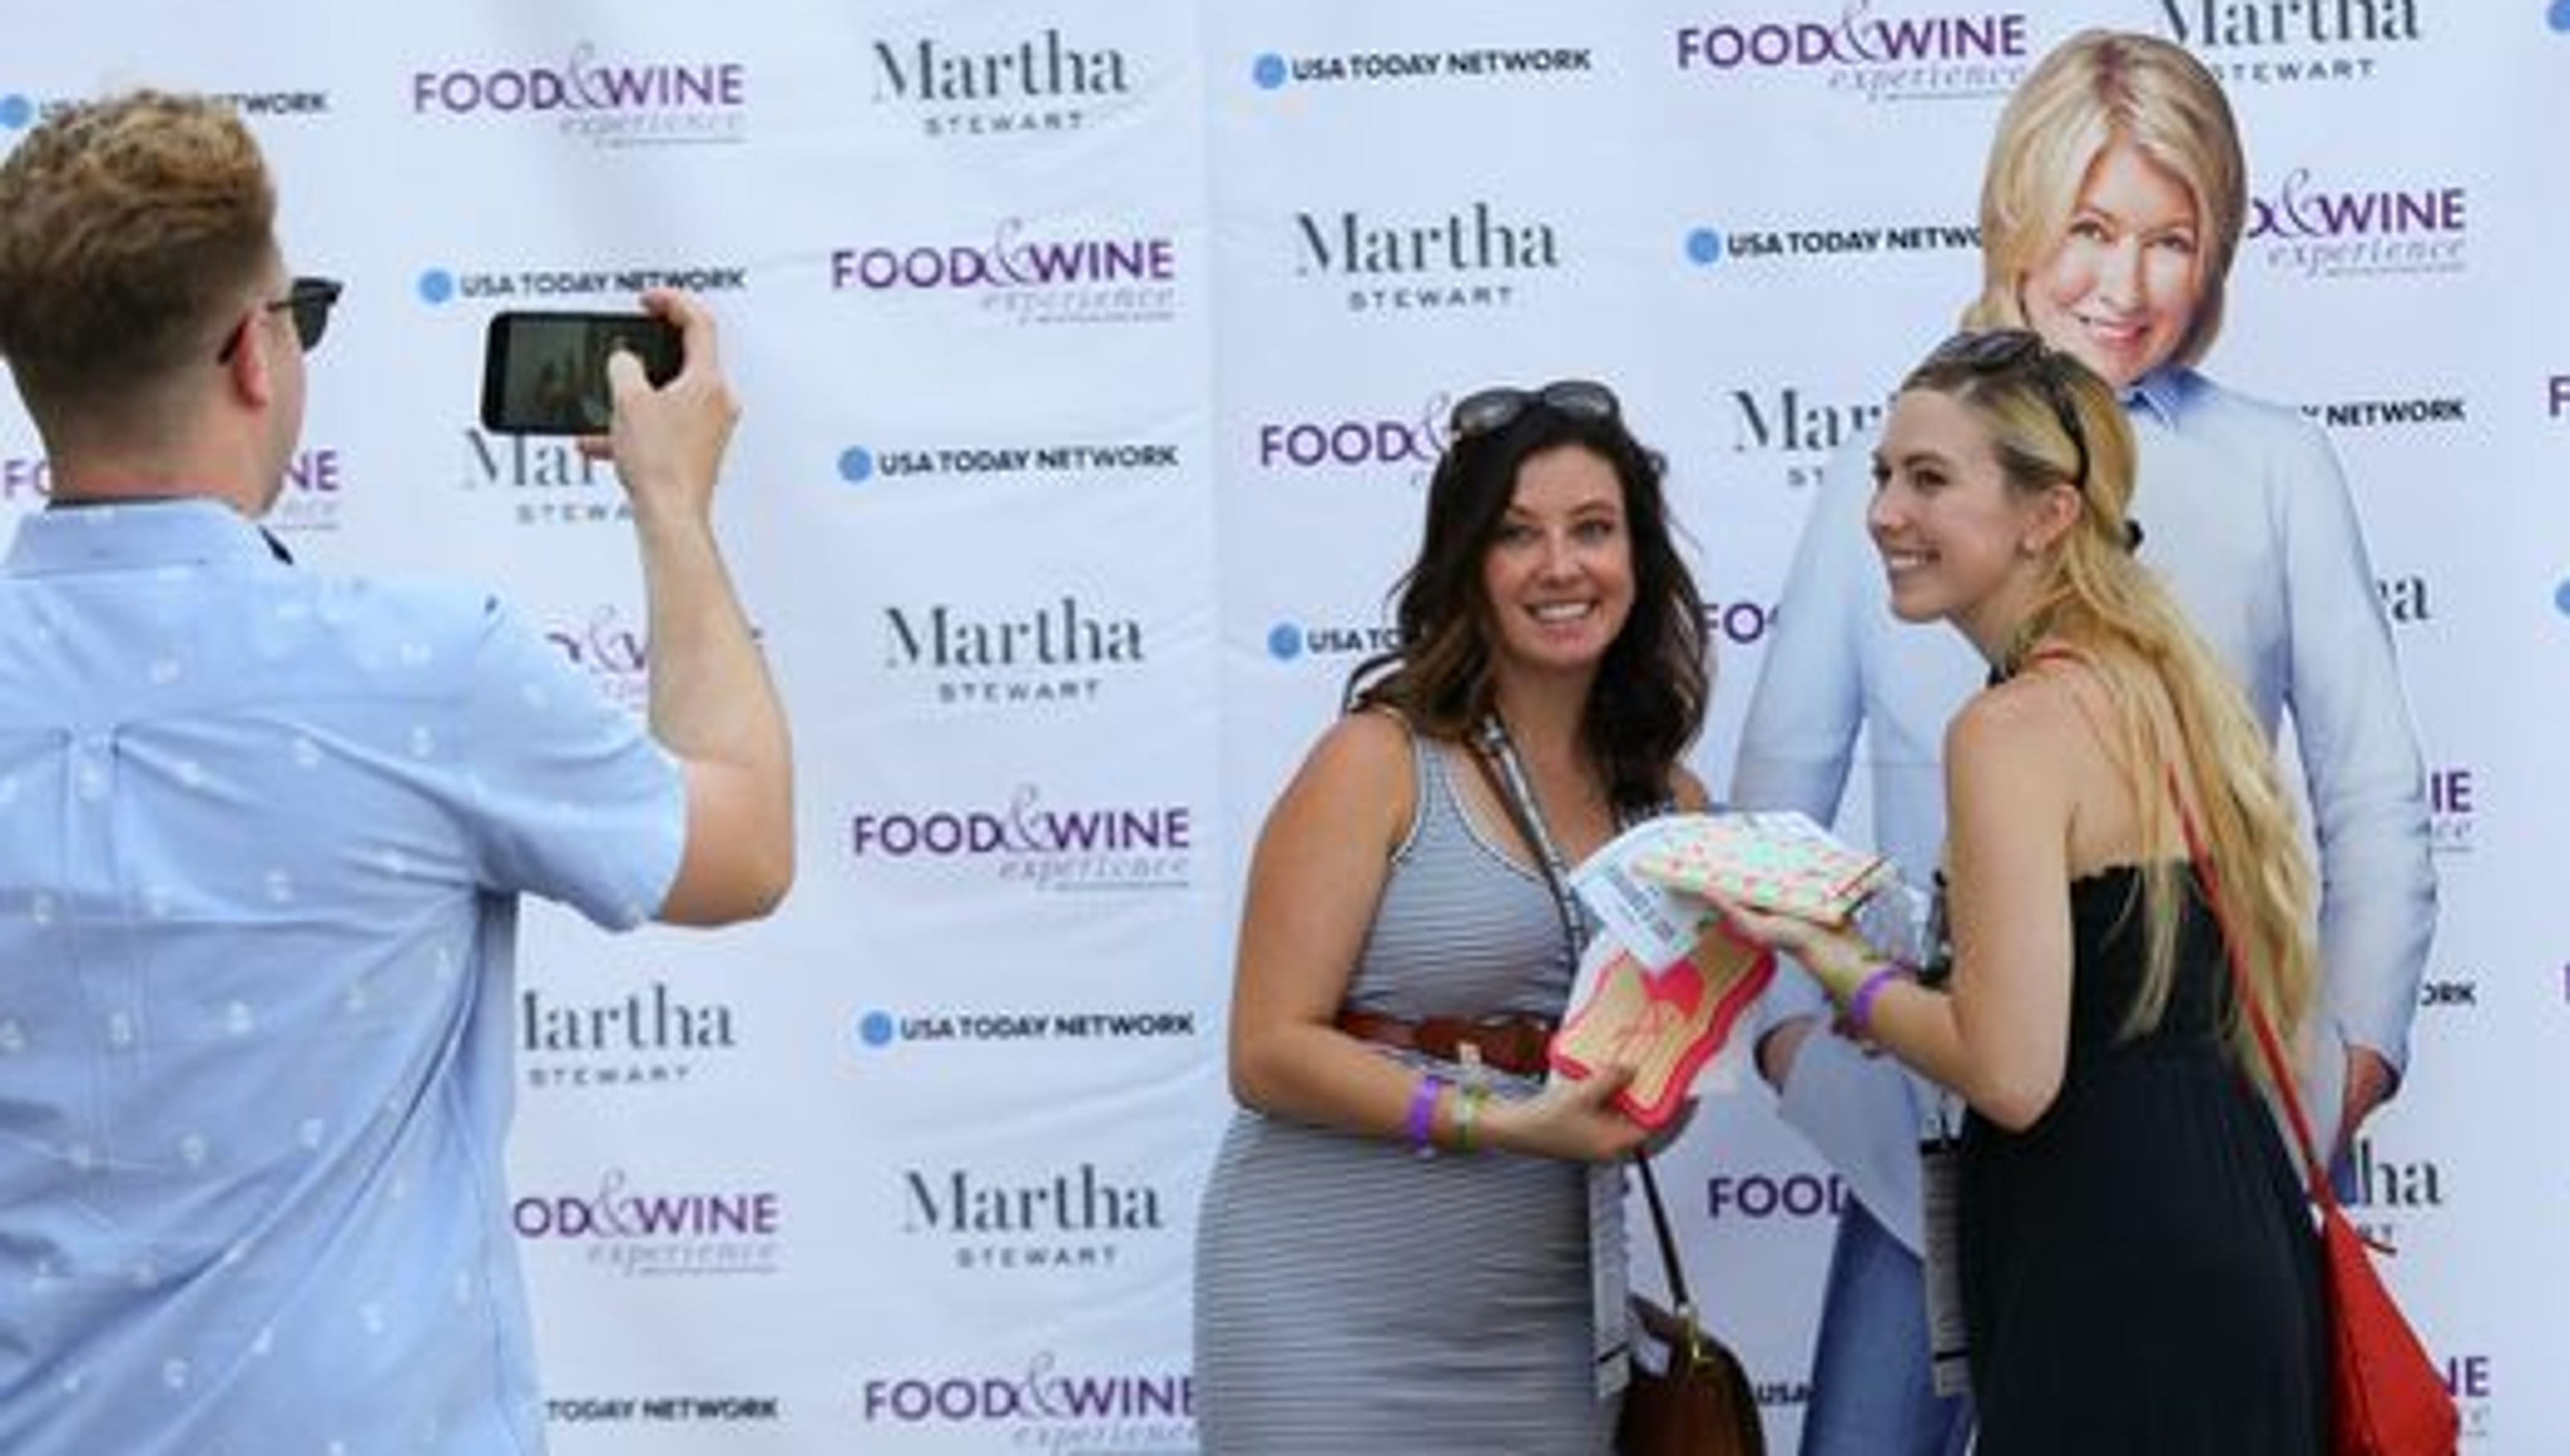 10 things to know about the Ventura County Star Food & Wine Experience